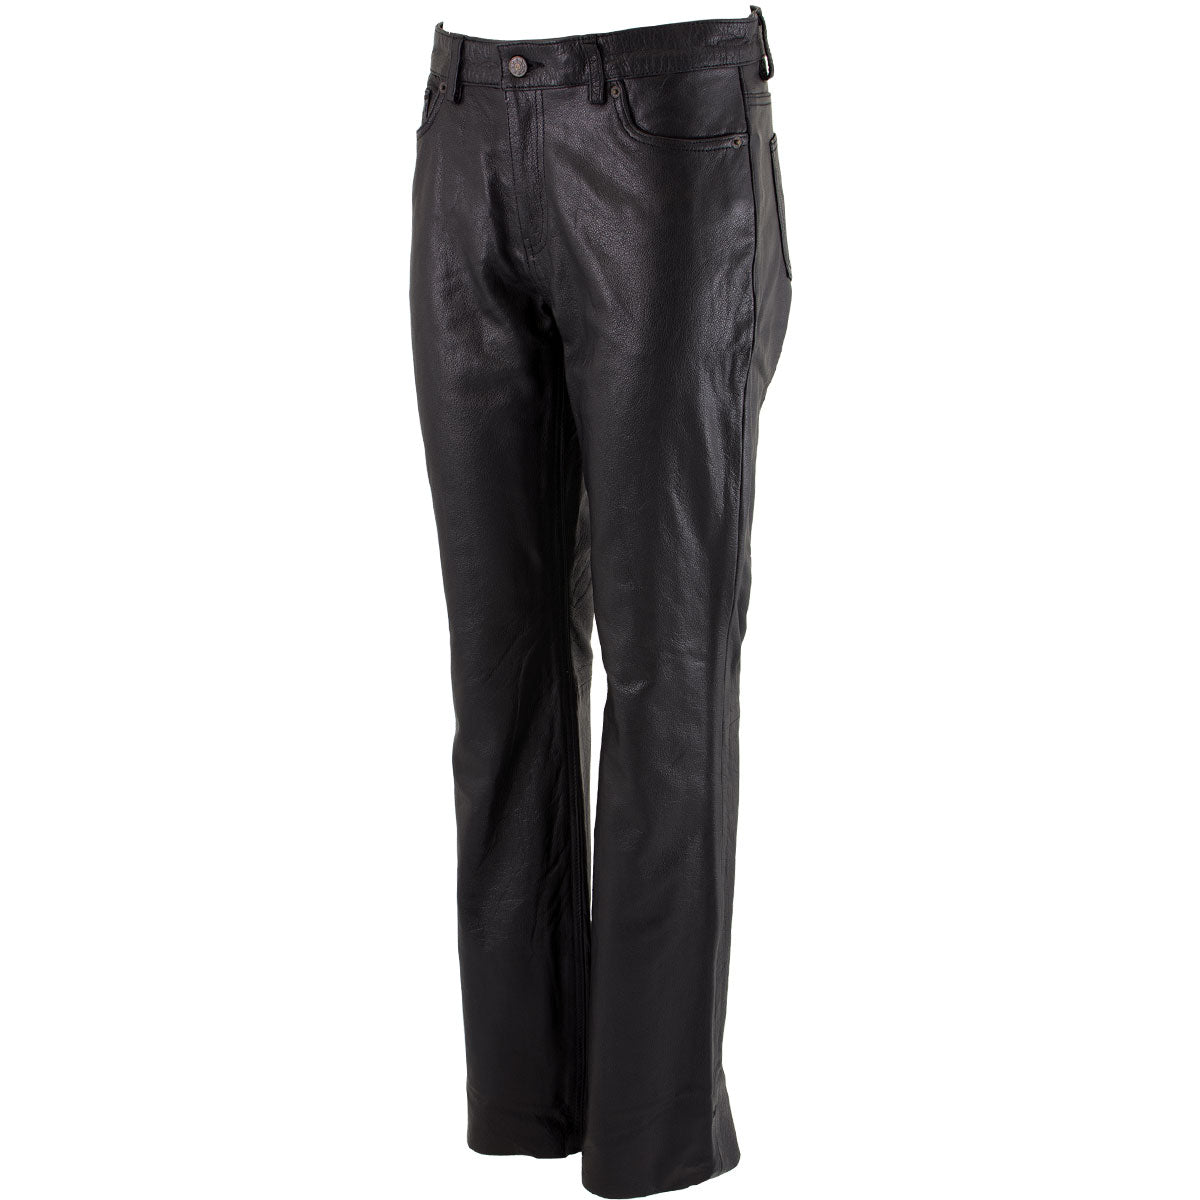 Xelement XS679 Women's Black Buffalo Leather Pants